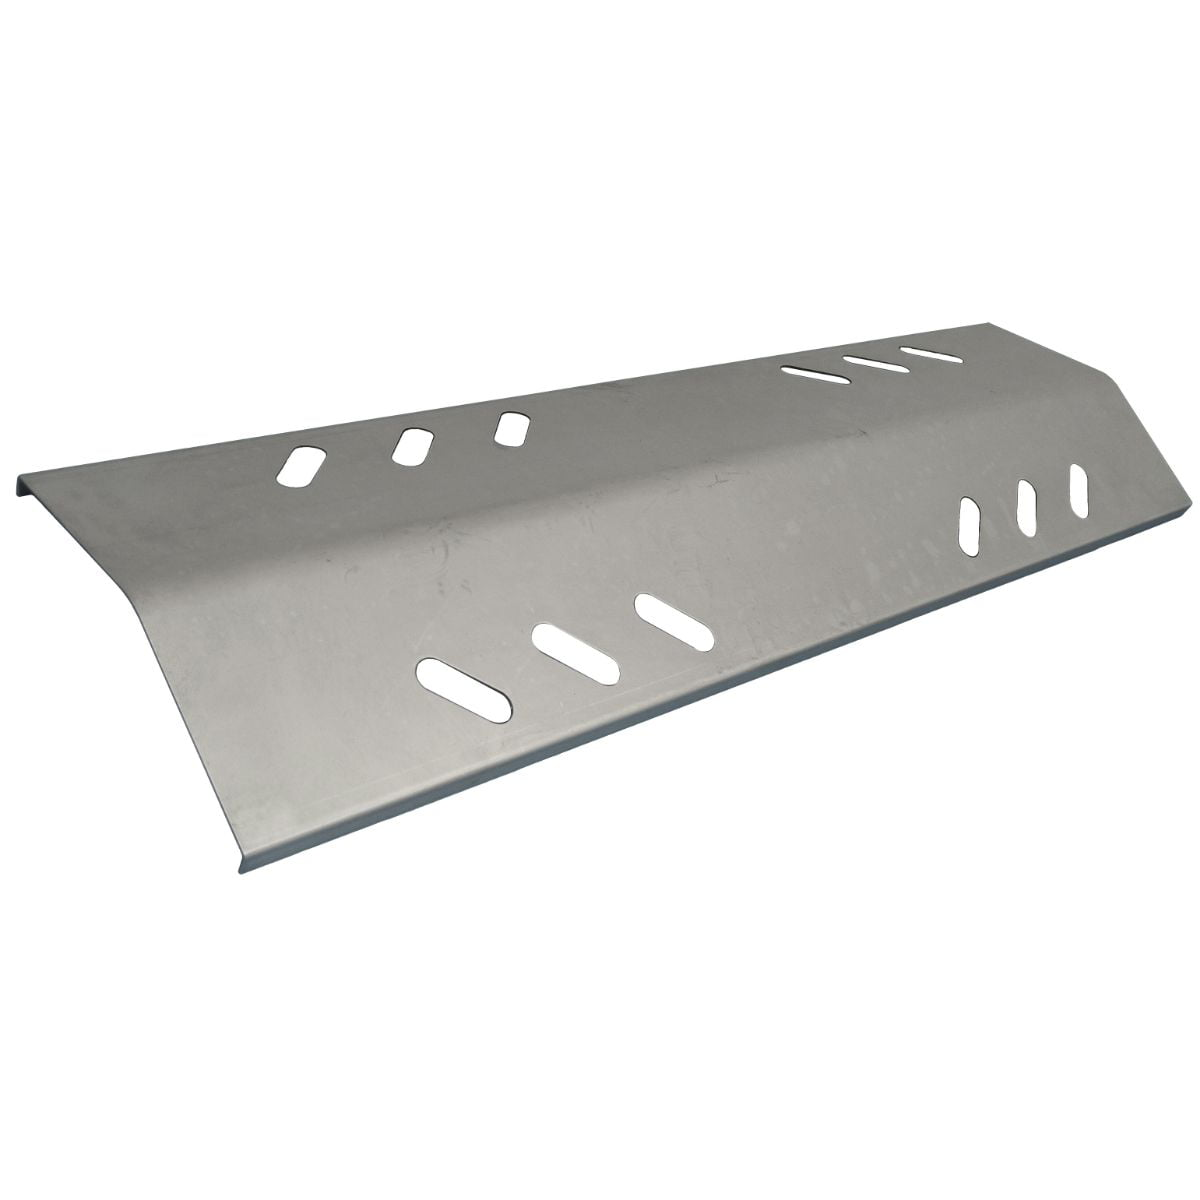 """16"""" Stainless Steel Heat Plate for BBQ Pro and Master Forge Gas Grills"""